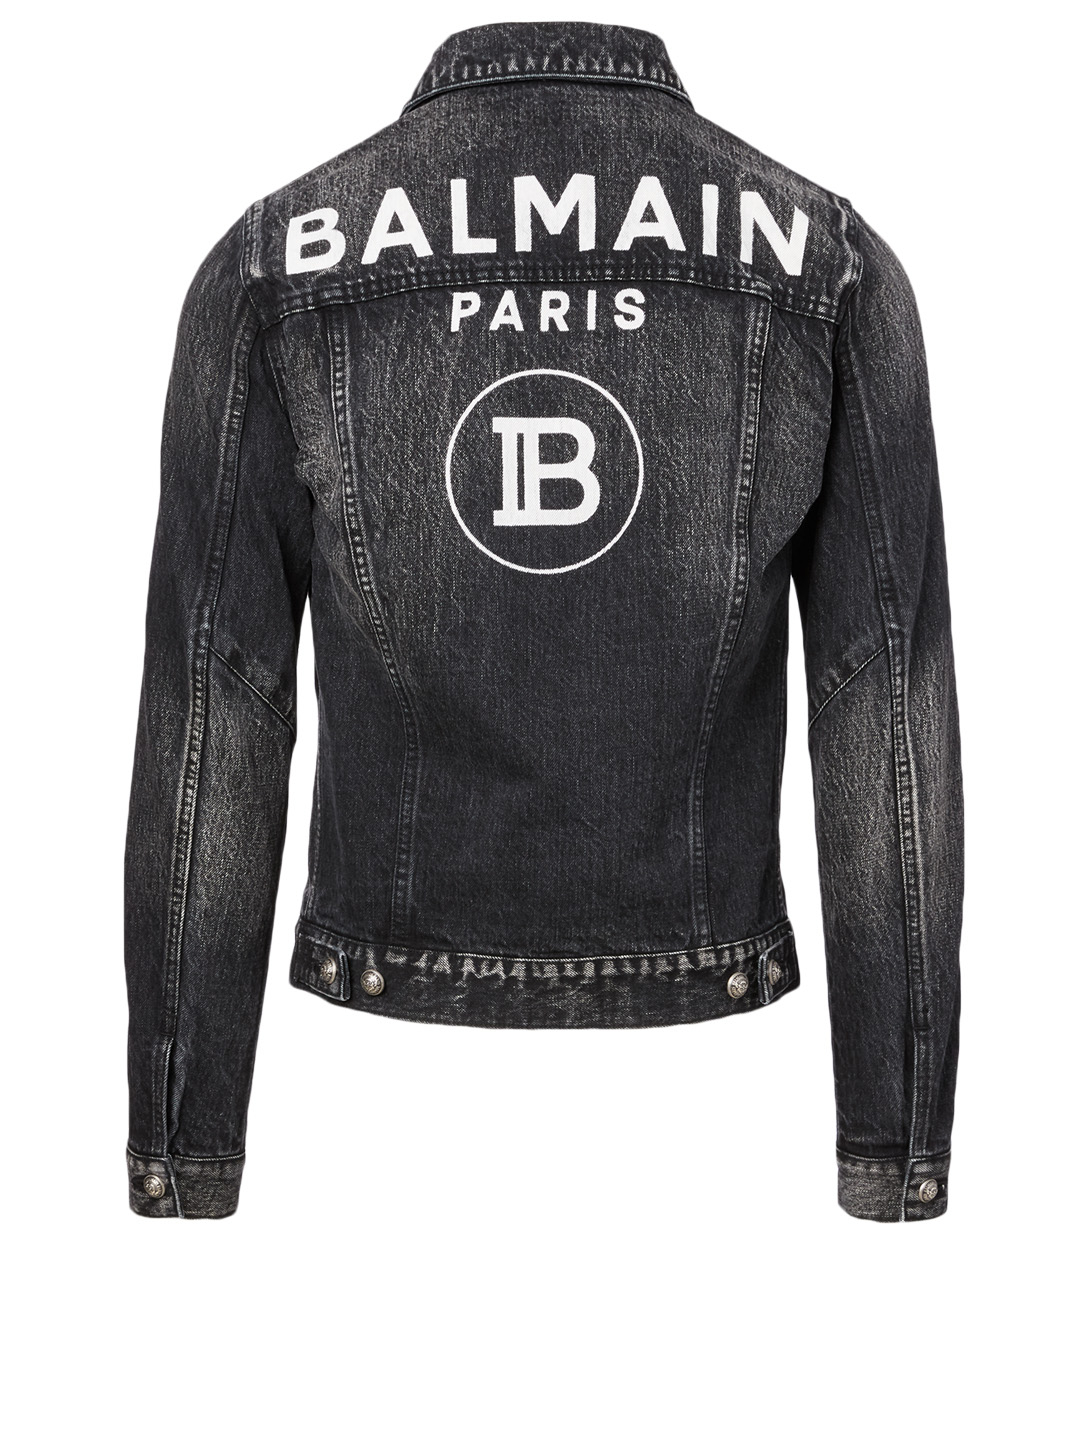 BALMAIN Cotton Denim Jacket Men's Black